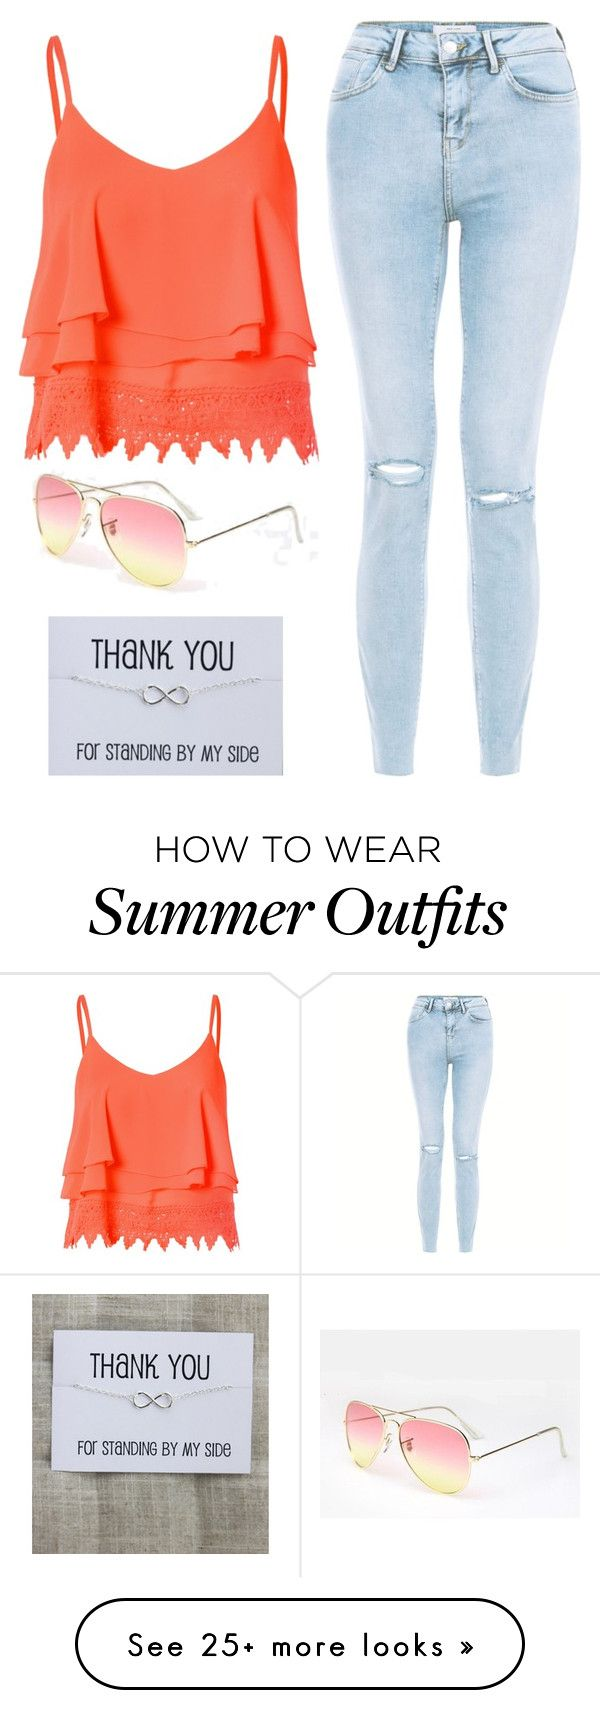 Summer Beach Outfit By Fab Life 939 On Polyvore Featuring New Look